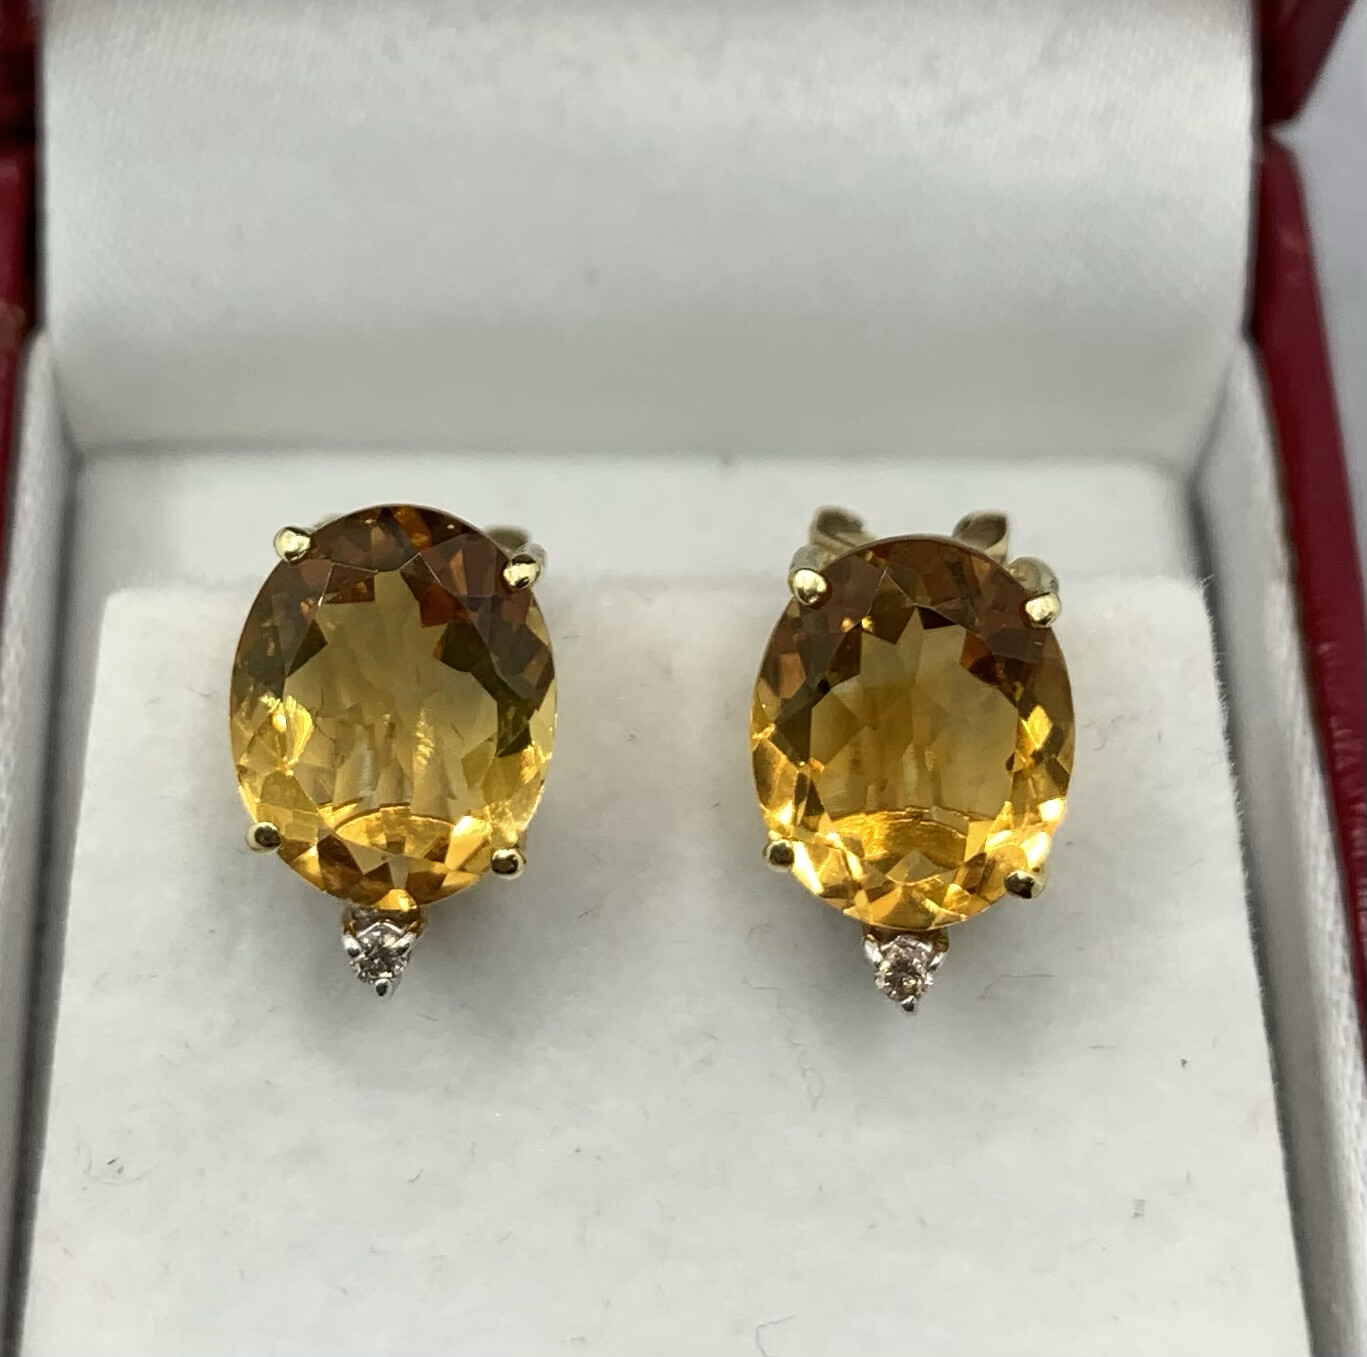 11mm X 7mm Stunning Citrine Earrings Diamond Accent